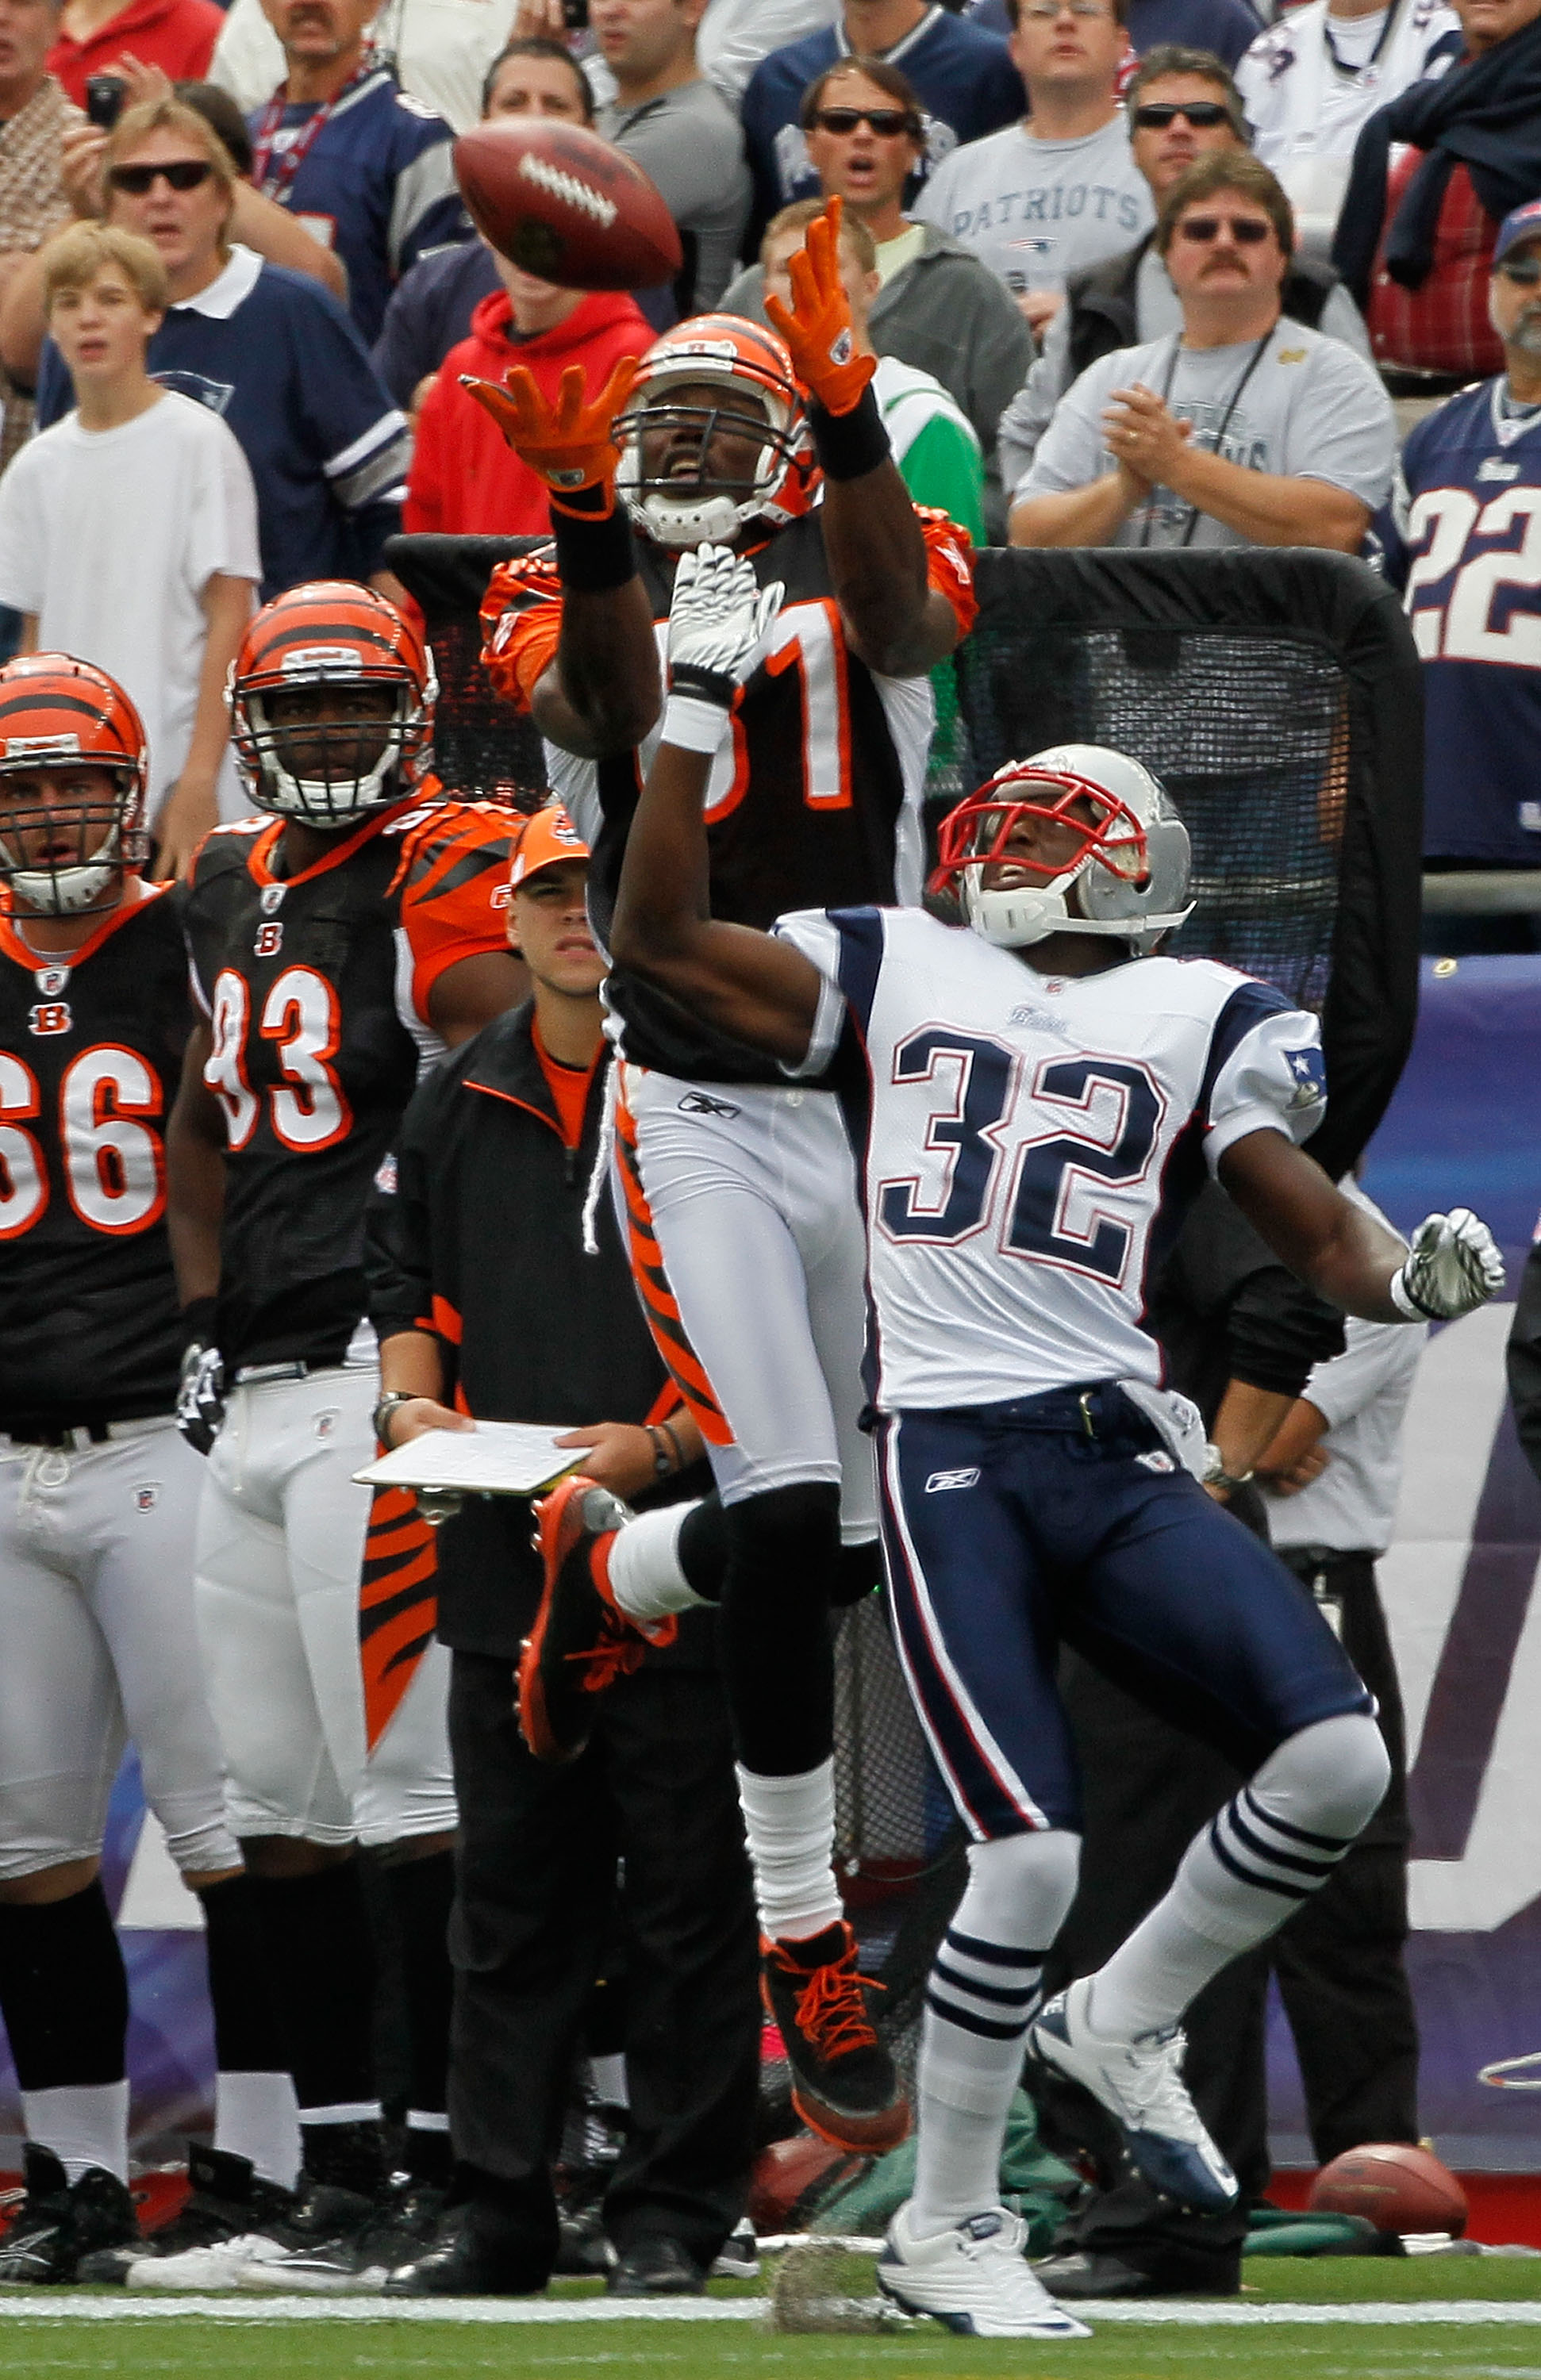 FOXBORO, MA - SEPTEMBER 12:  Terrell Owens #81 of the Cincinnati Bengals is unable to hold on to a pass against the defense of Devin McCarthy #32 of the New England Patriots during the NFL season opener  at Gillette Stadium on September 12, 2010 in Foxbor